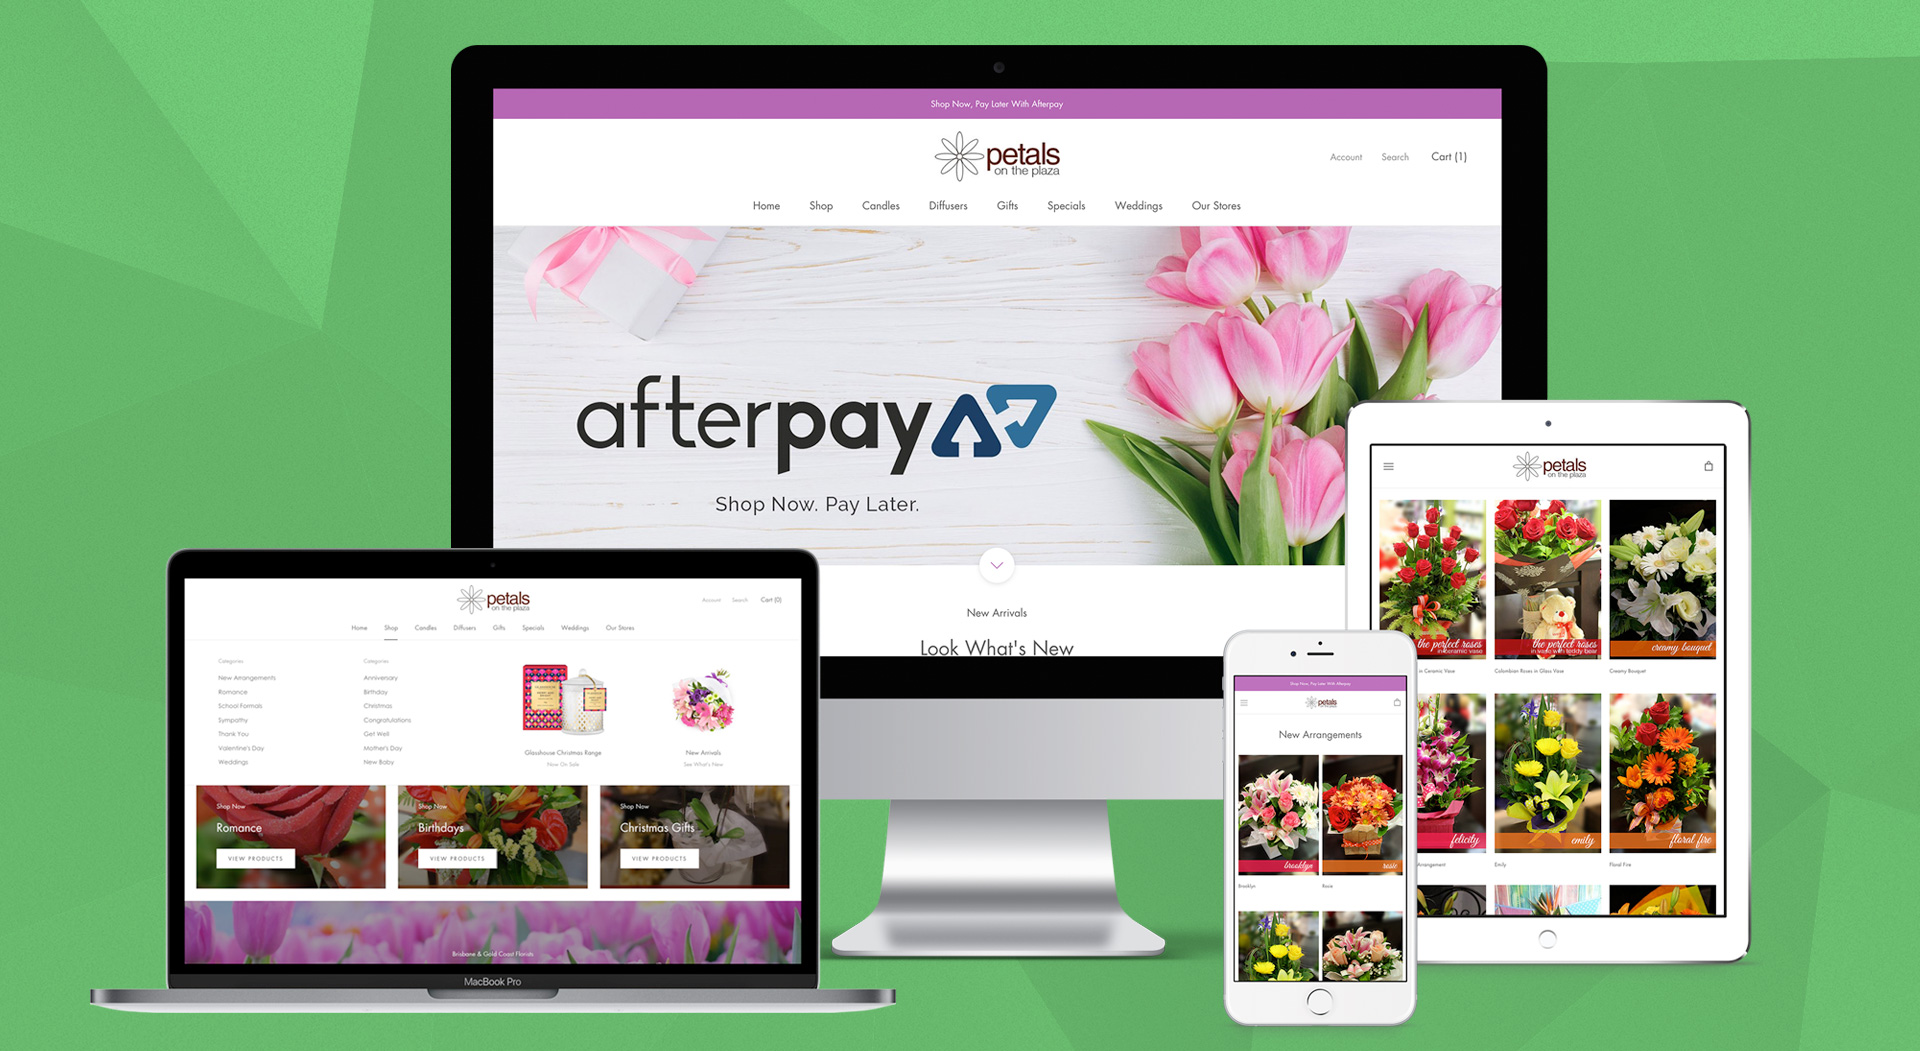 petals-on-the-plaza-website-design-brisbane-onepoint-software-solutions-shopify